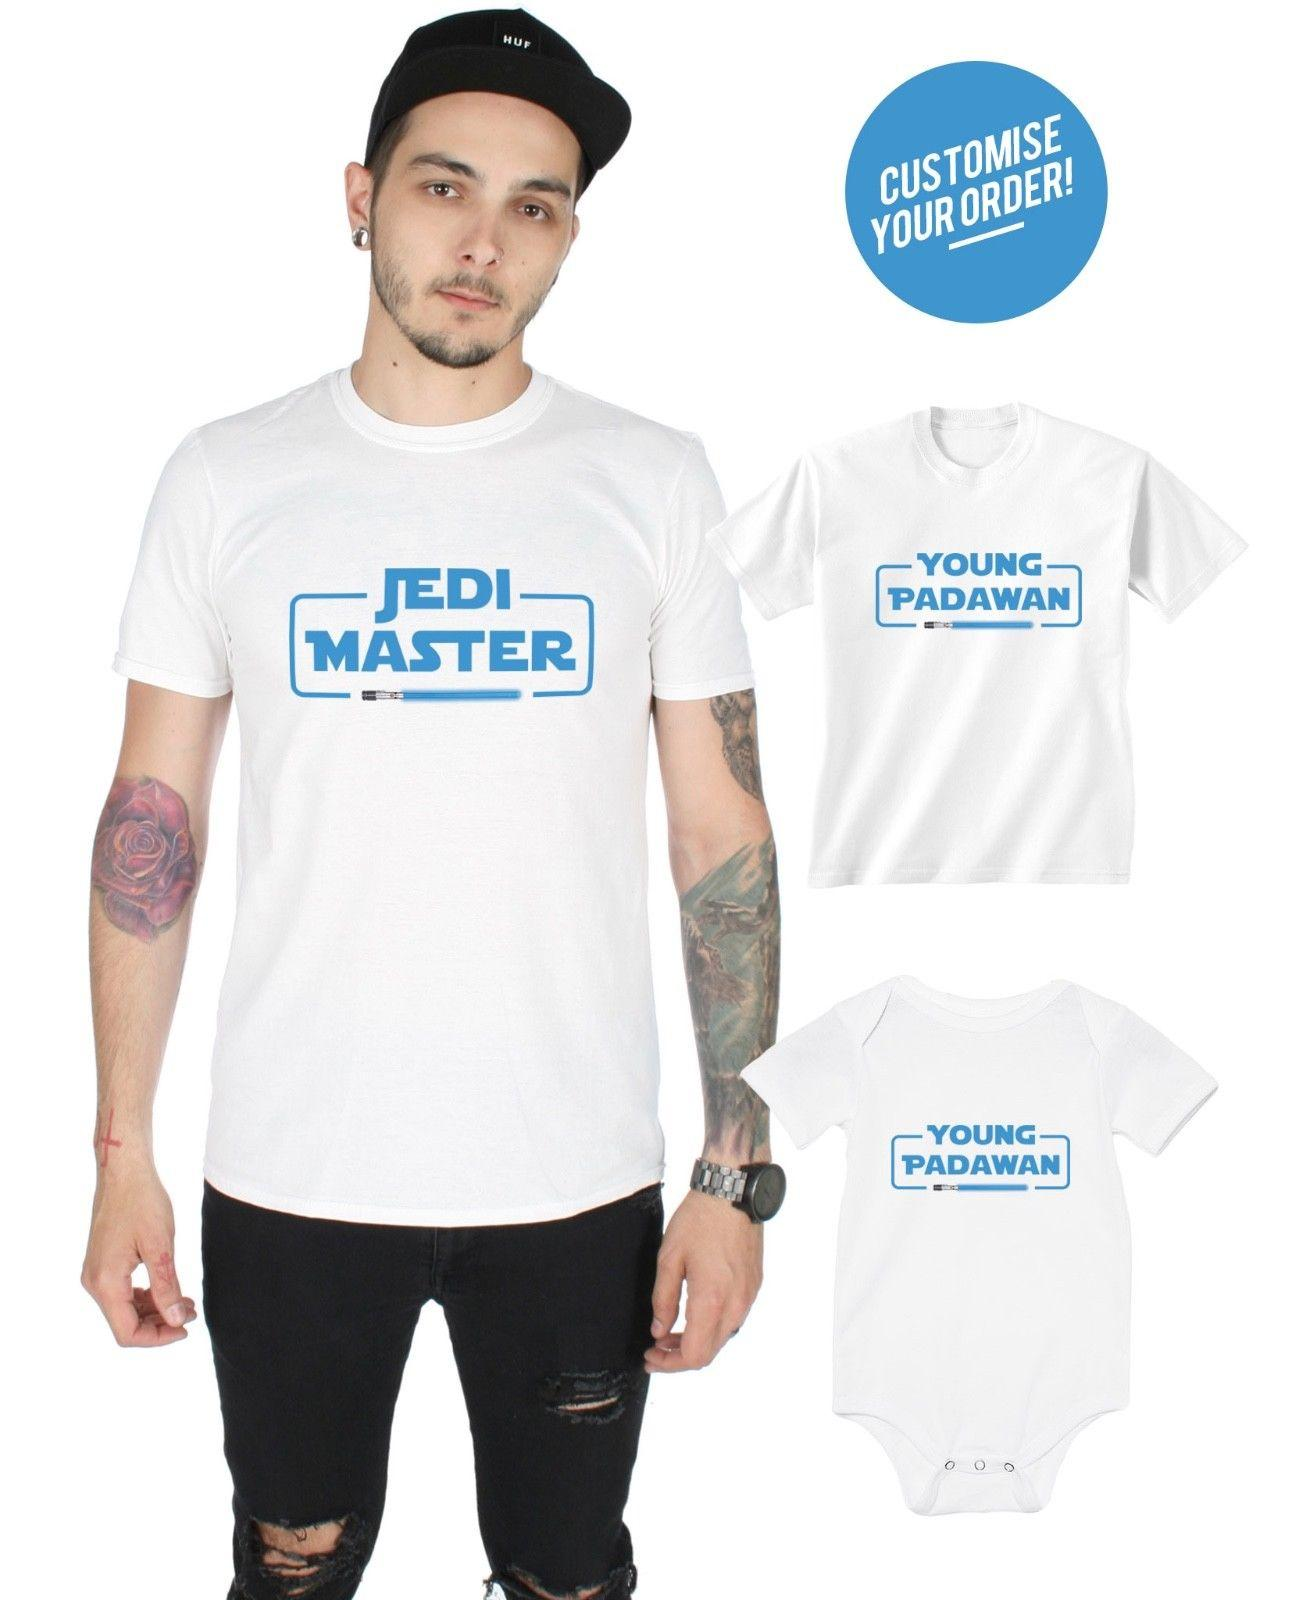 cb270e90 Jedi Master Young Padawan Matching T Shirt Baby Grow Set Dad Father And Son  Gift Funny Unisex Gift Shop T Shirts Online T Shirt Shirt From Topclassa,  ...